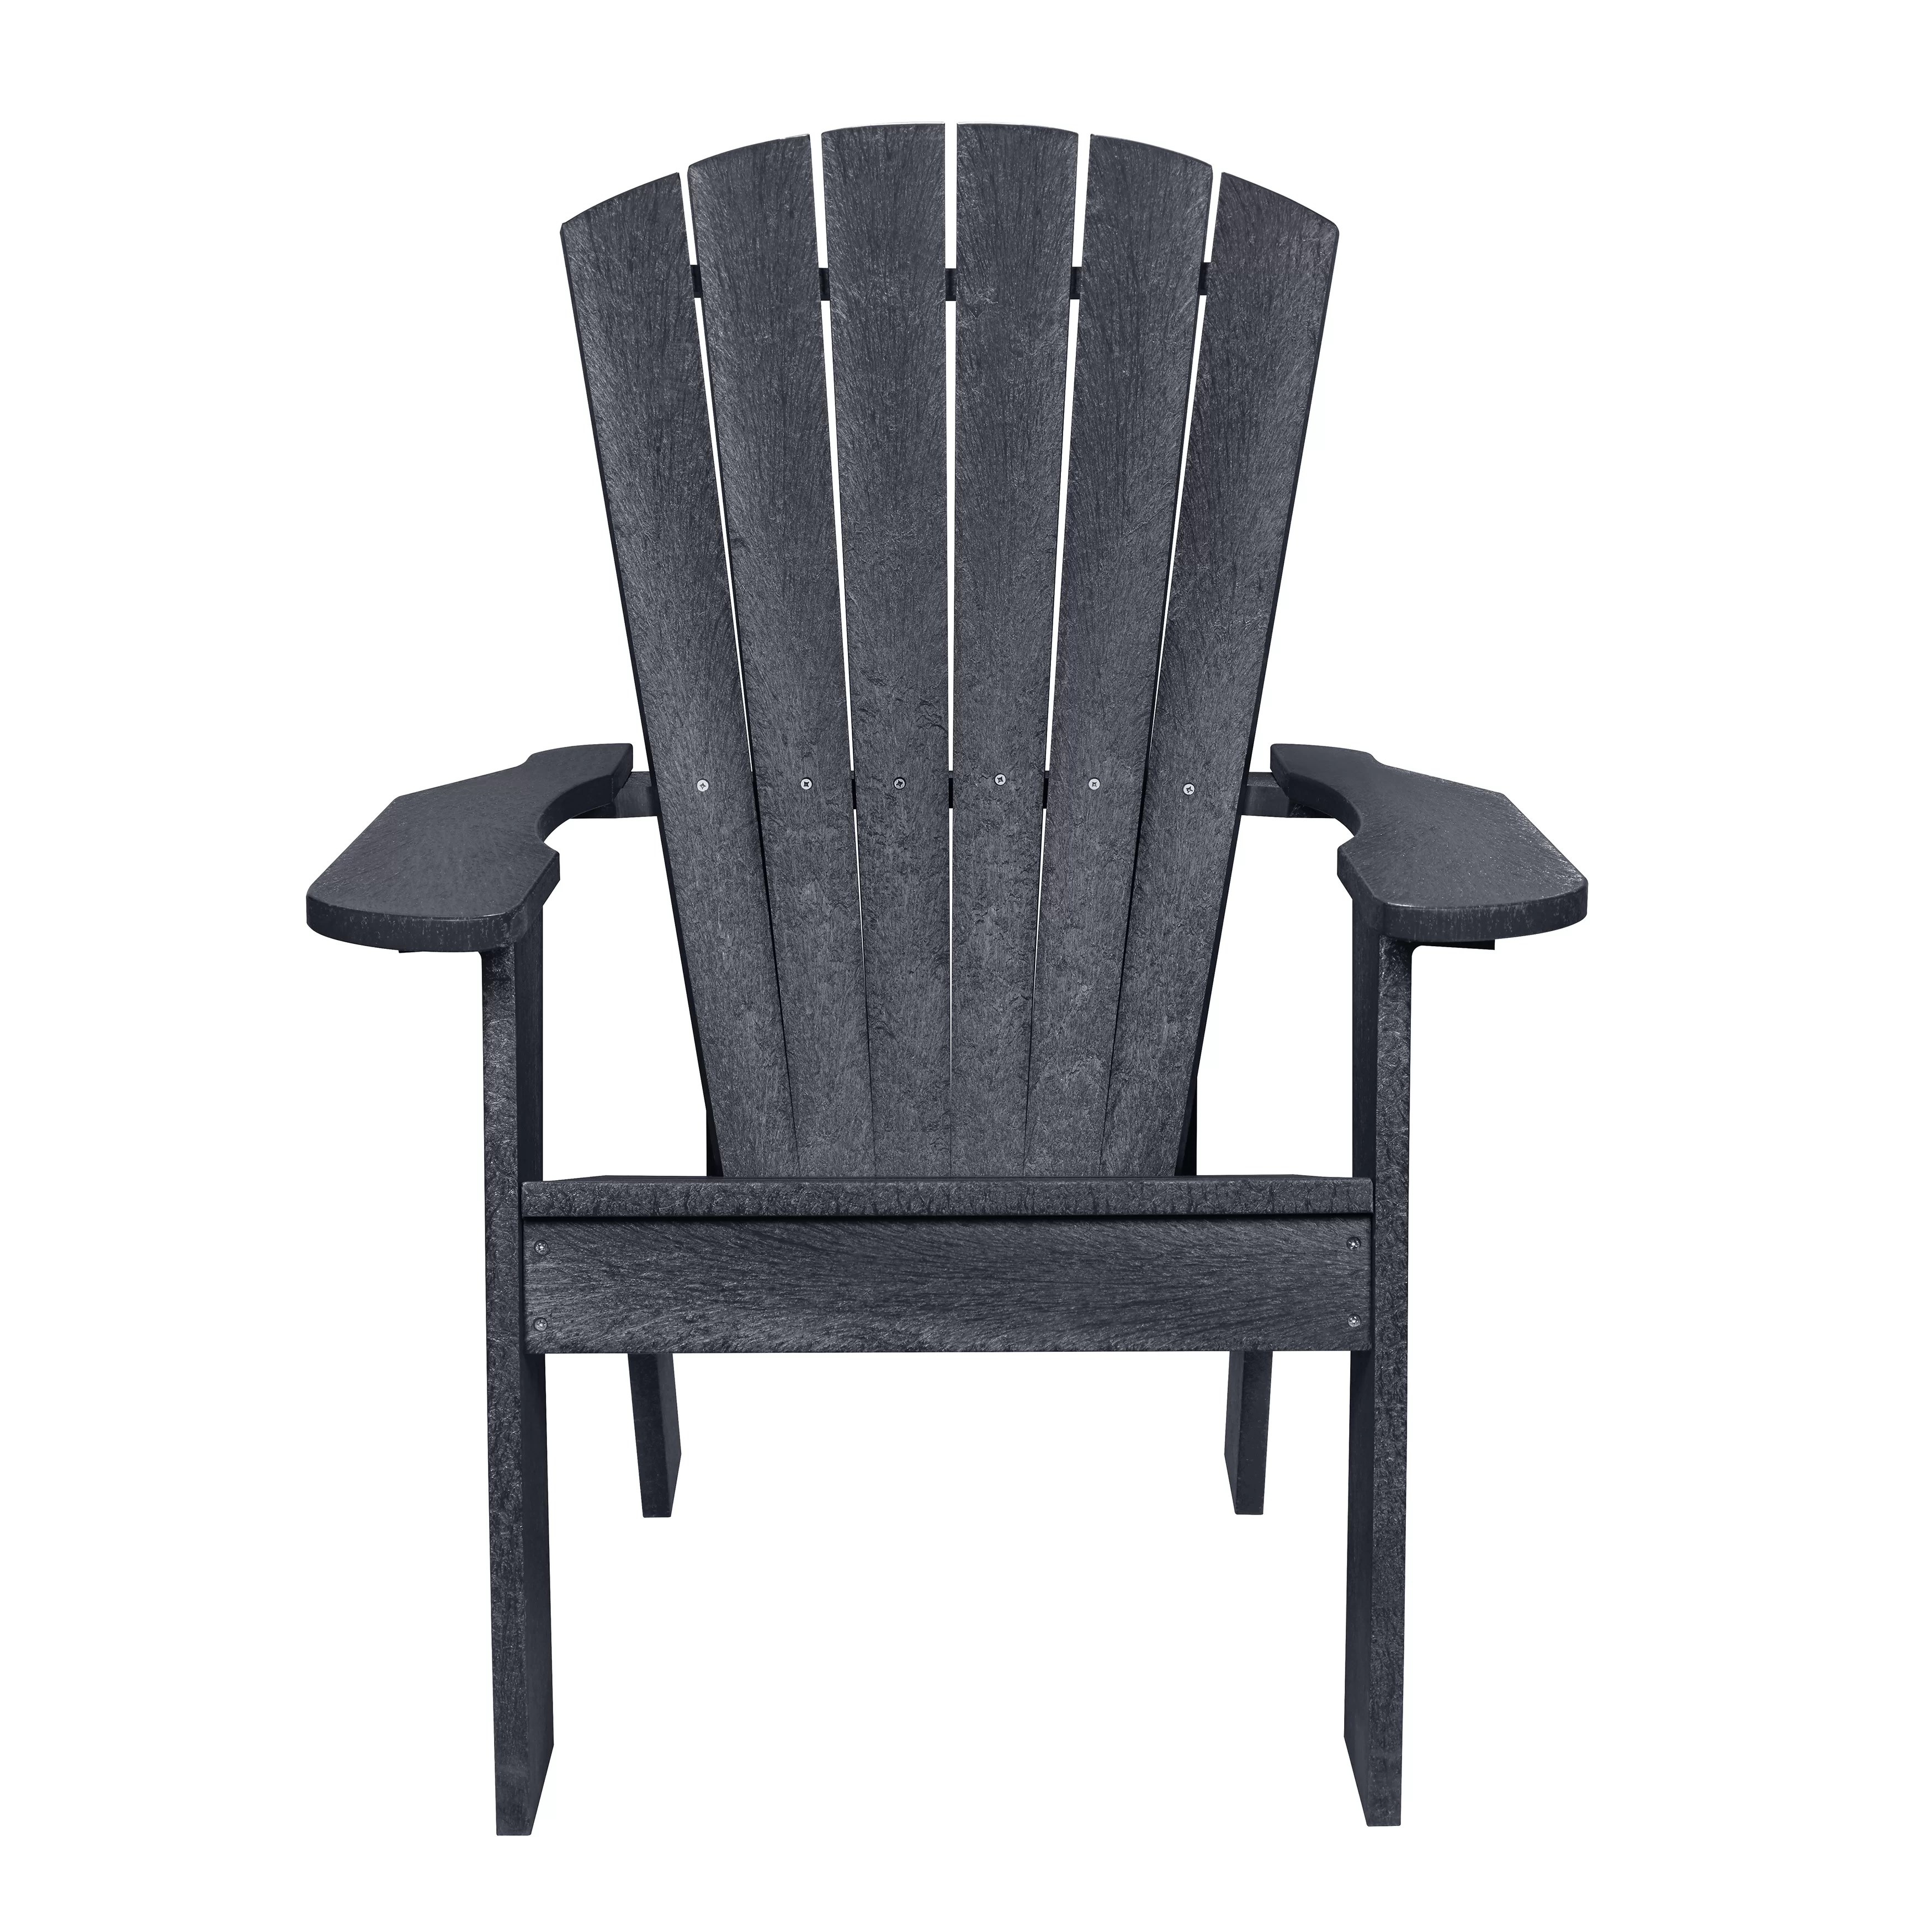 Lifetime Adirondack Chairs Colworth Plastic Adirondack Chair